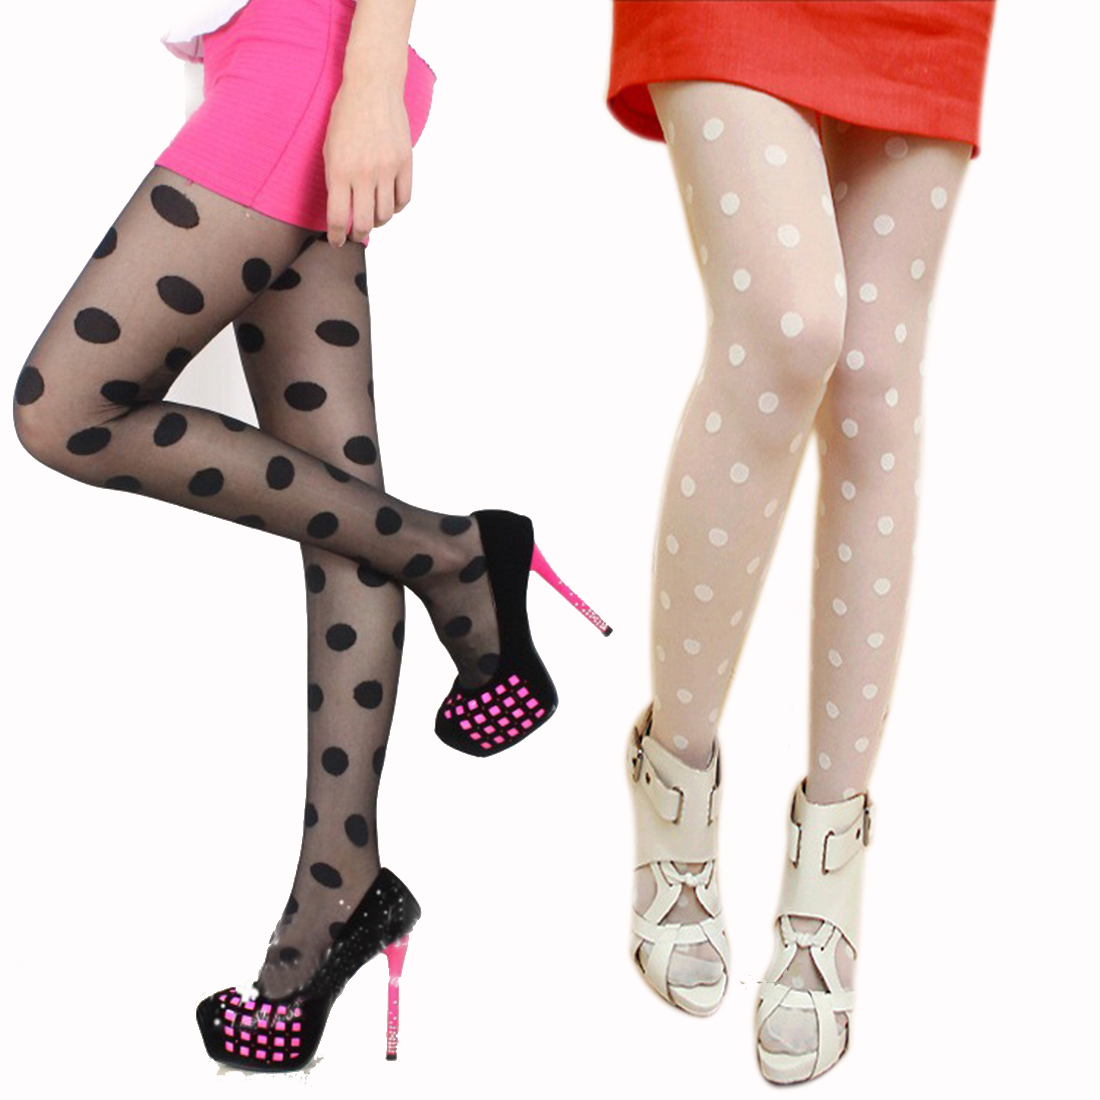 Hot Fashion 1PC Women Sexy Tights Pantyhose Sheer Lace Big Dot Pantyhose Stockings Tights Entirely Seamless Collants